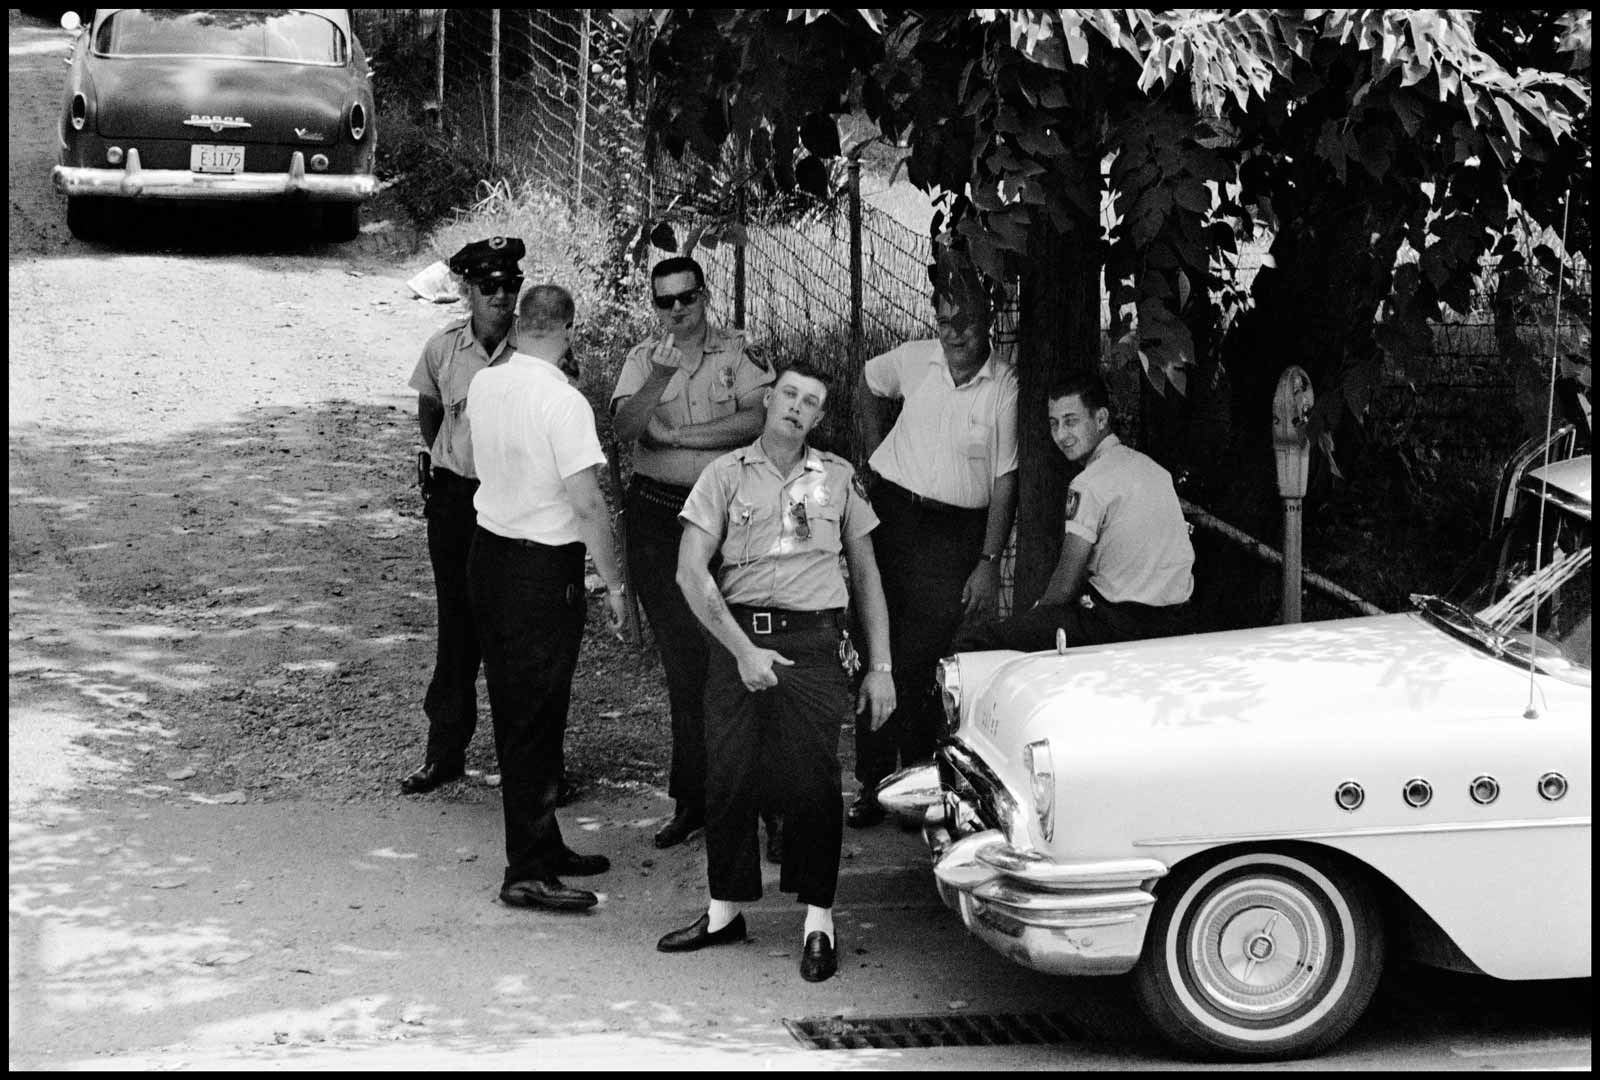 Danny Lyon/Magnum Photos Police in Clarksdale, Mississippi, 1963